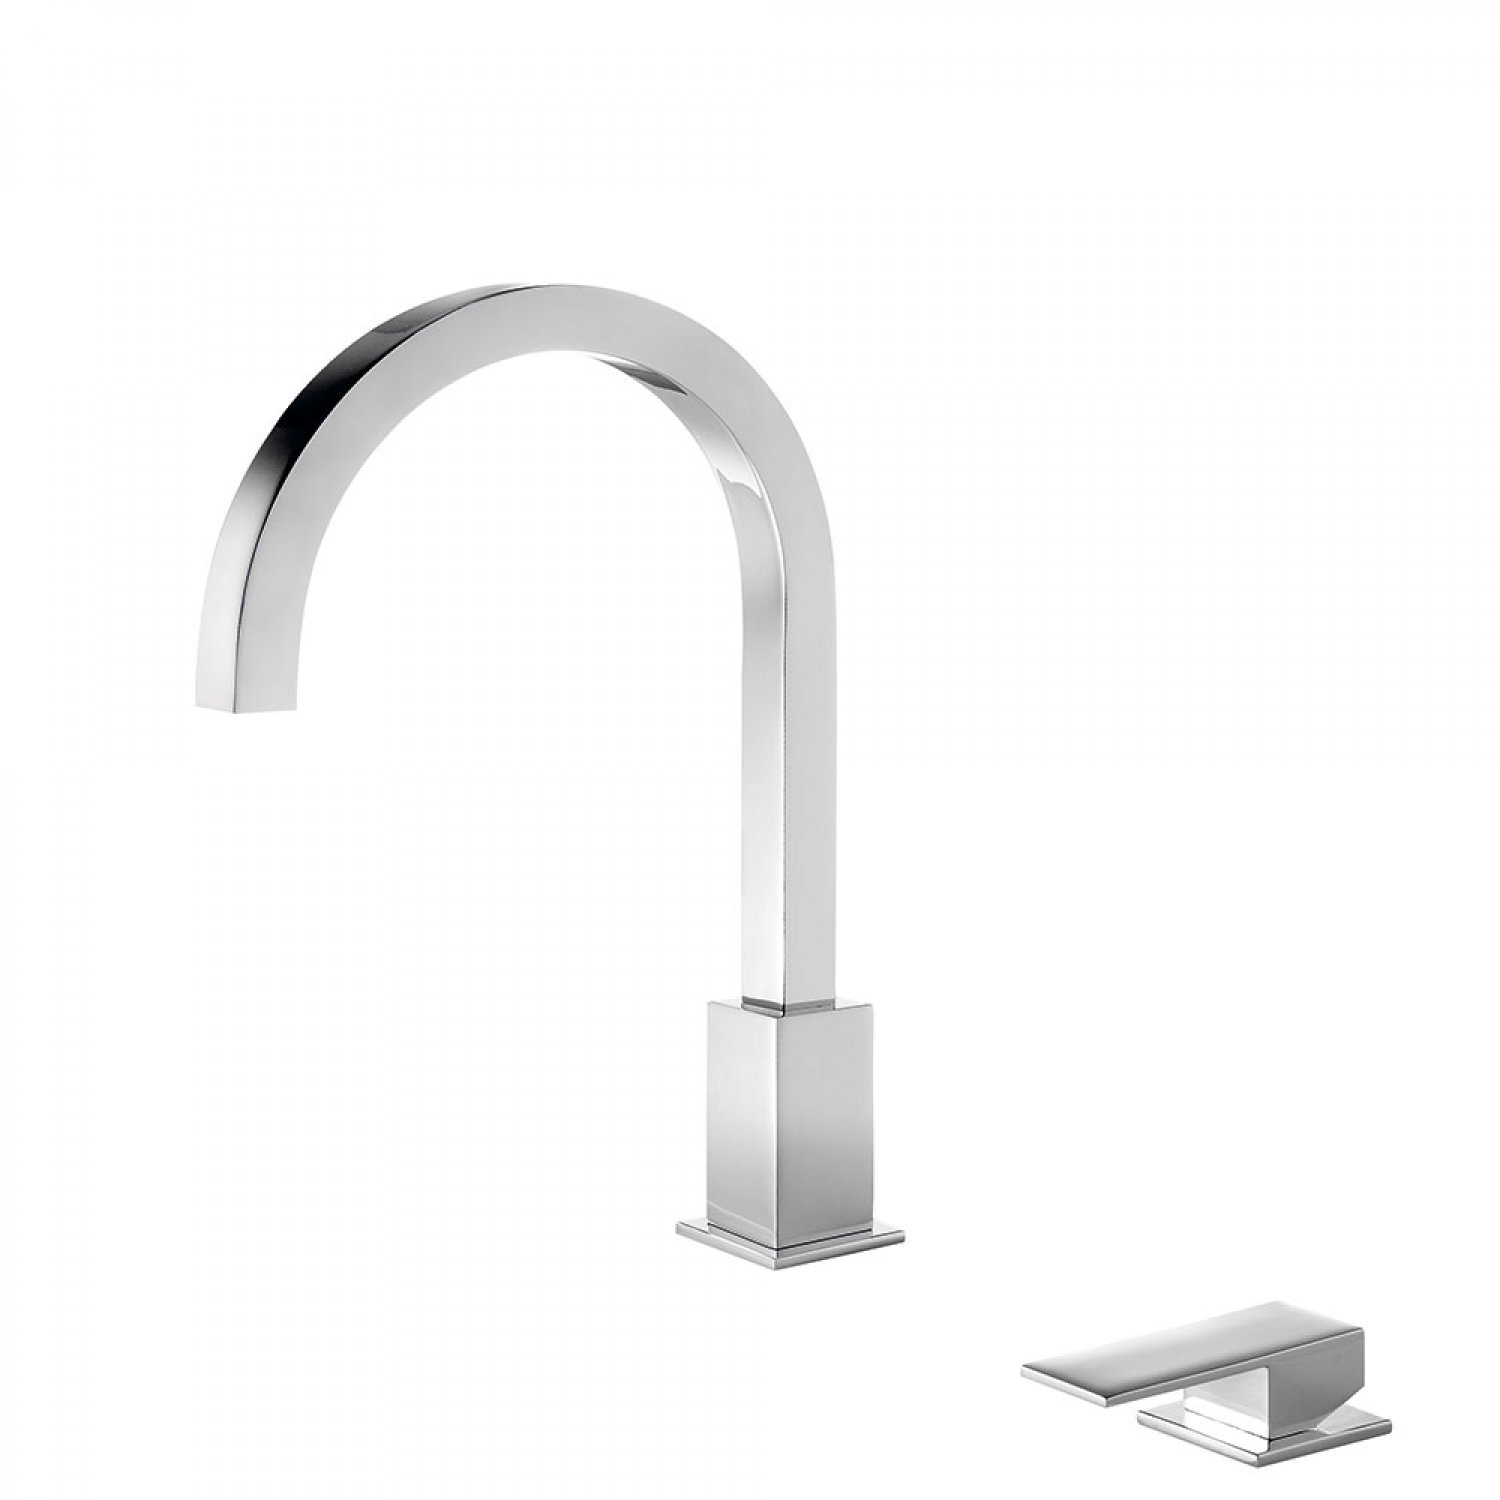 http://desidea.hu/wp-content/uploads/2019/07/Single-lever-wall-washbasin-mixer-00610503.jpg